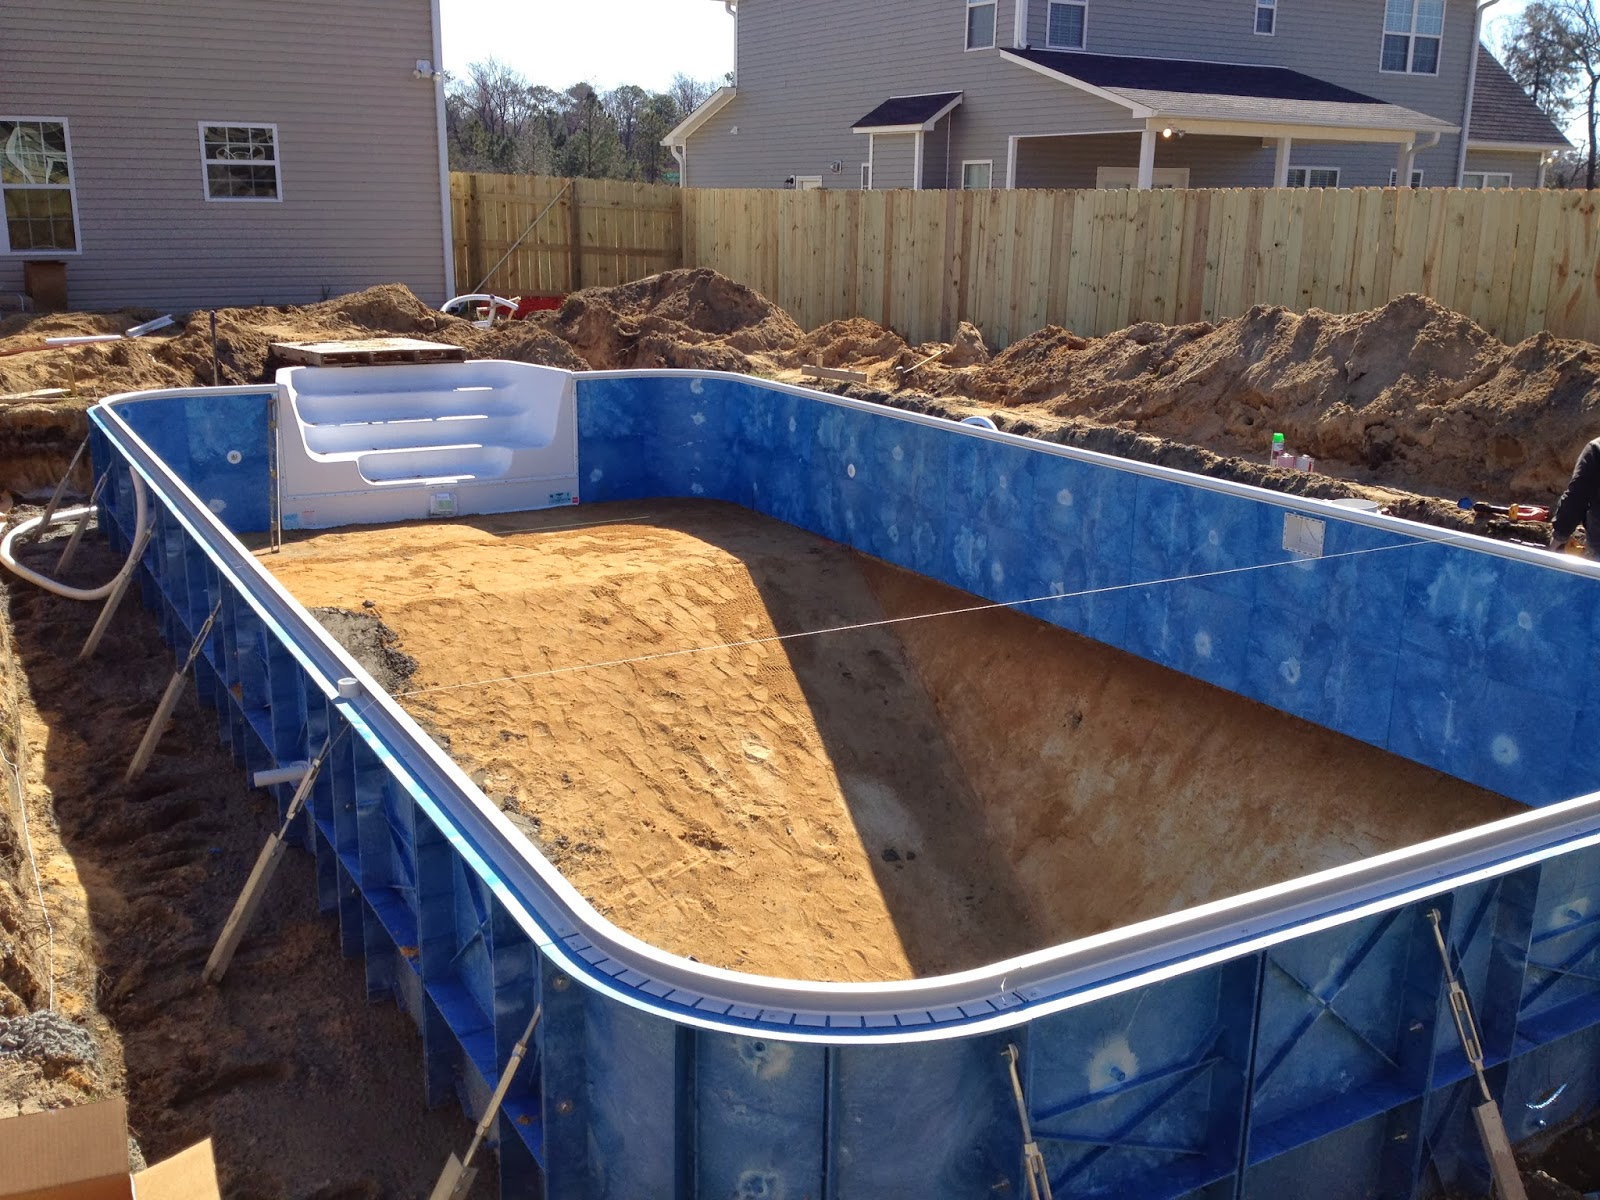 Parrot life swimming pool blog most common swimming for Pool design mistakes